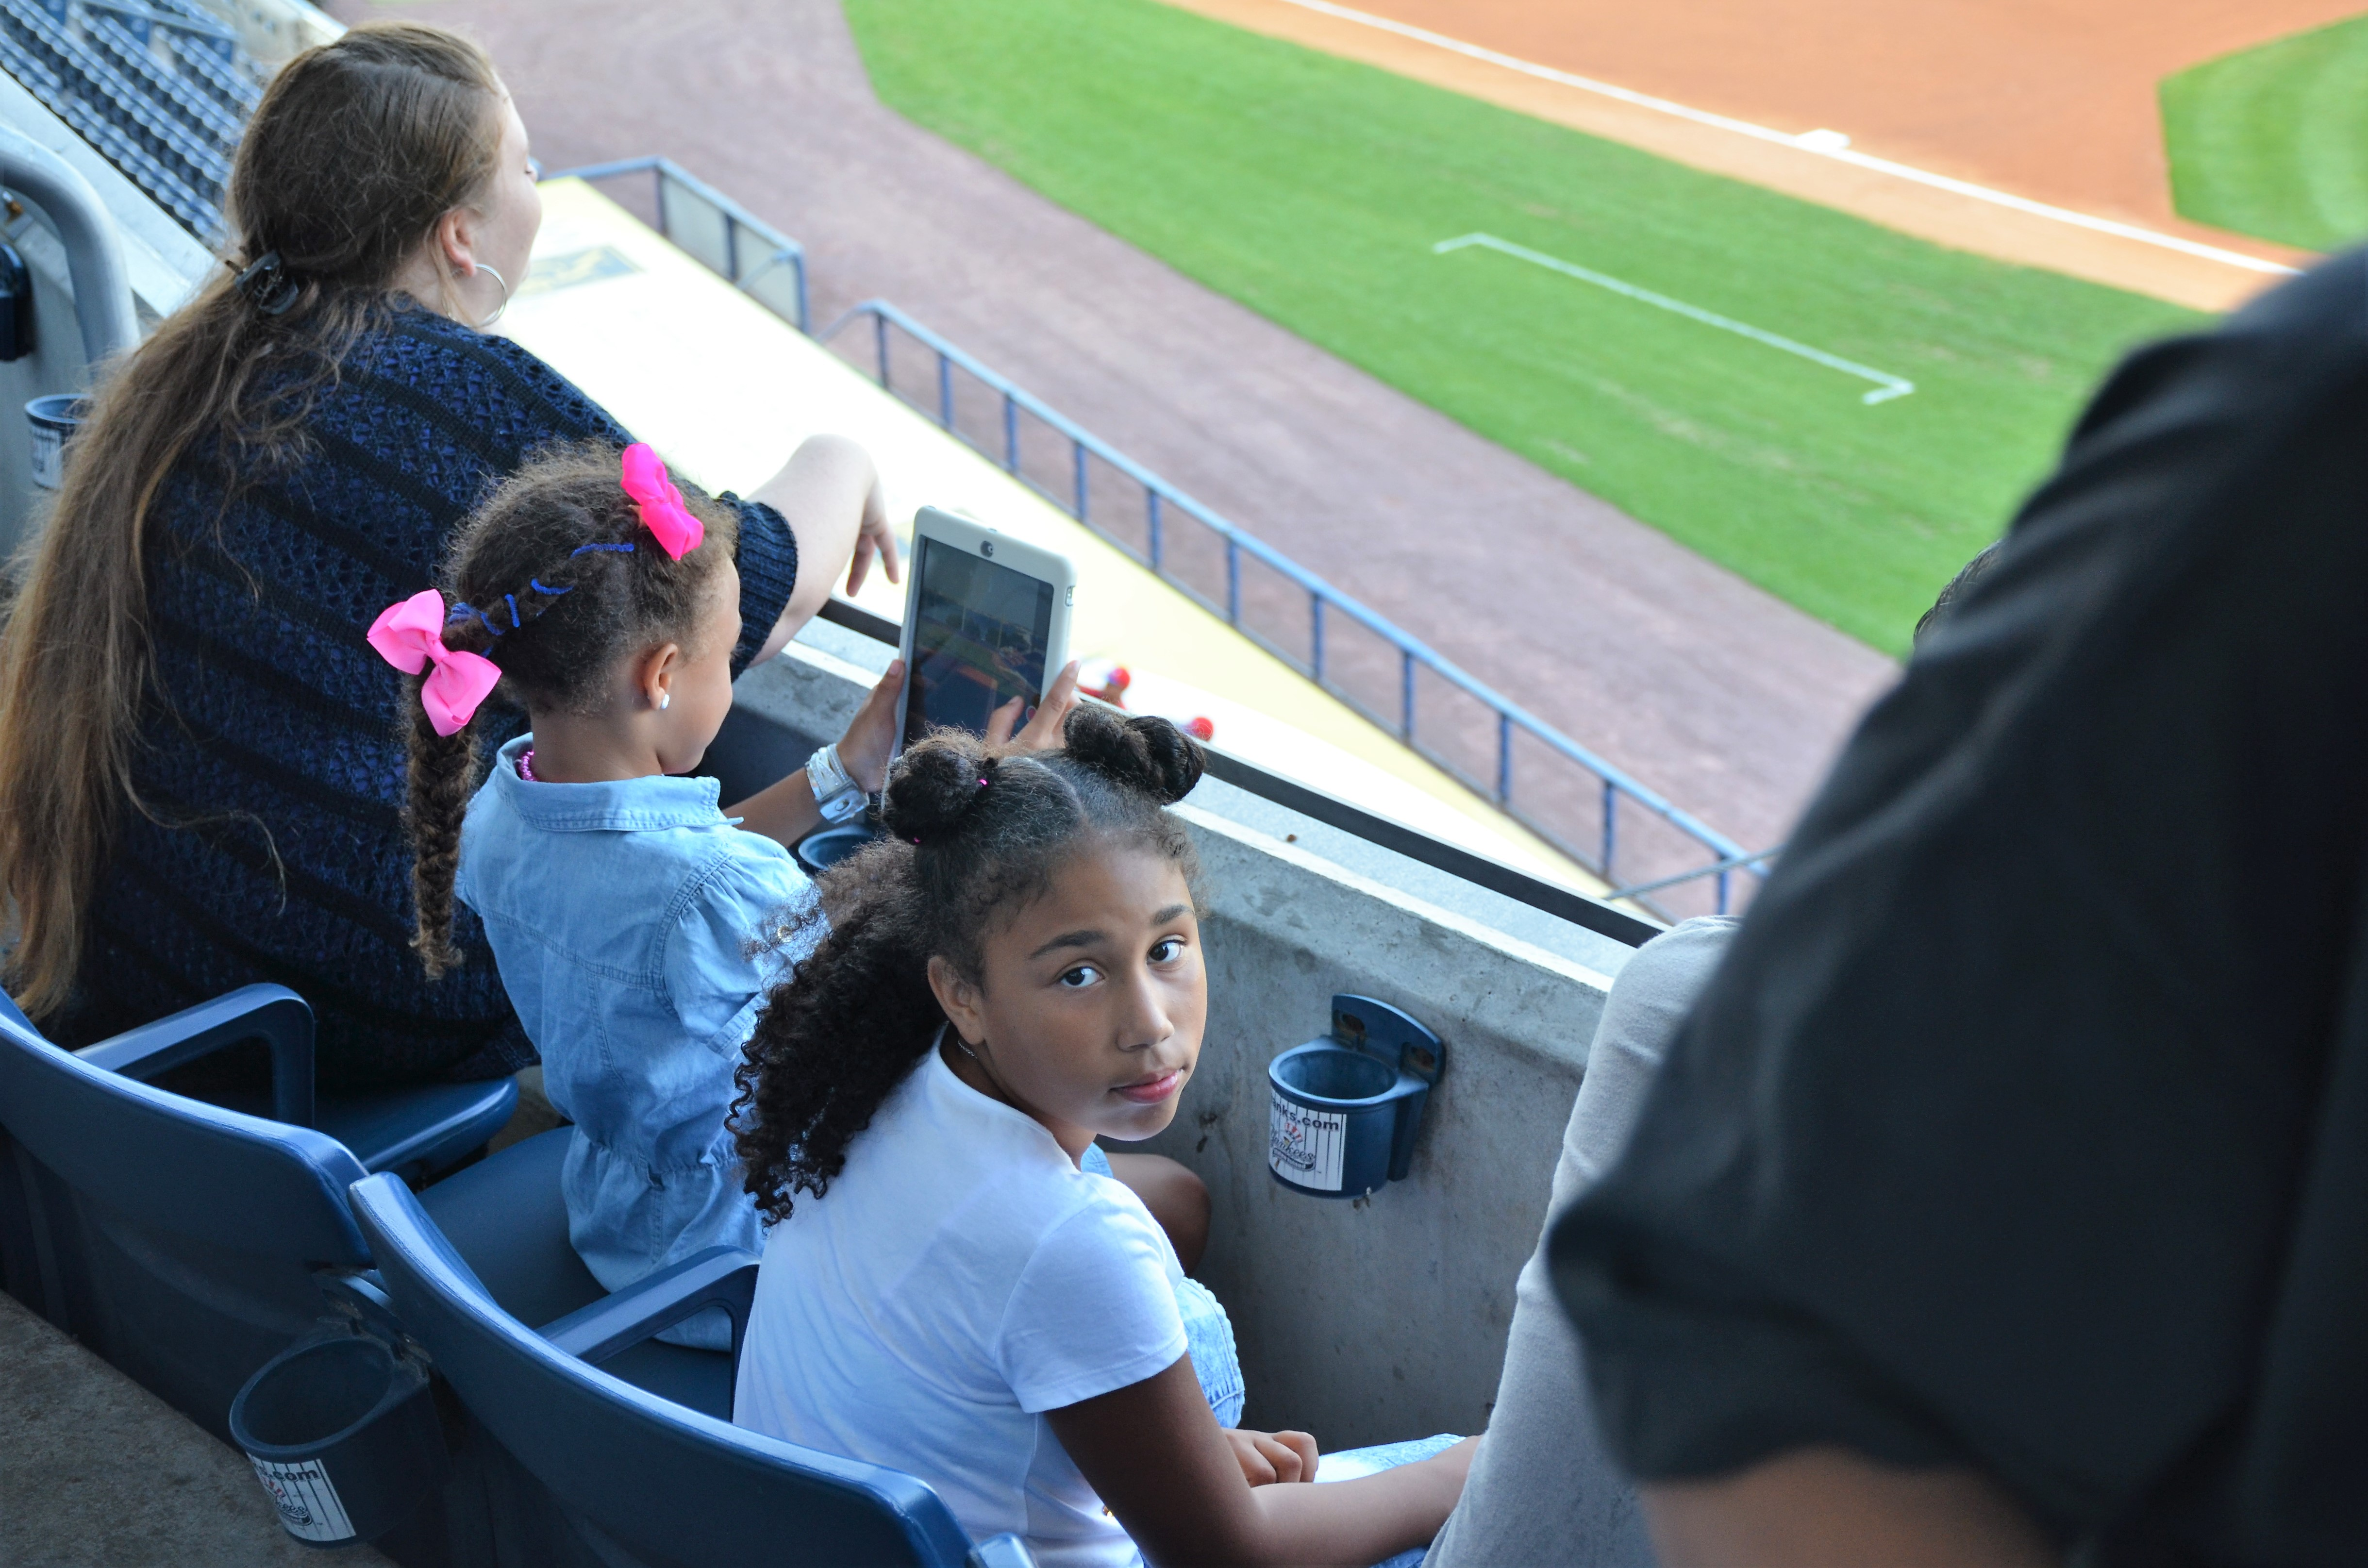 Staten Island Yankees/Con Edison Kid Triniti Jackson enjoying watching the game from the luxury suite balcony with her family.